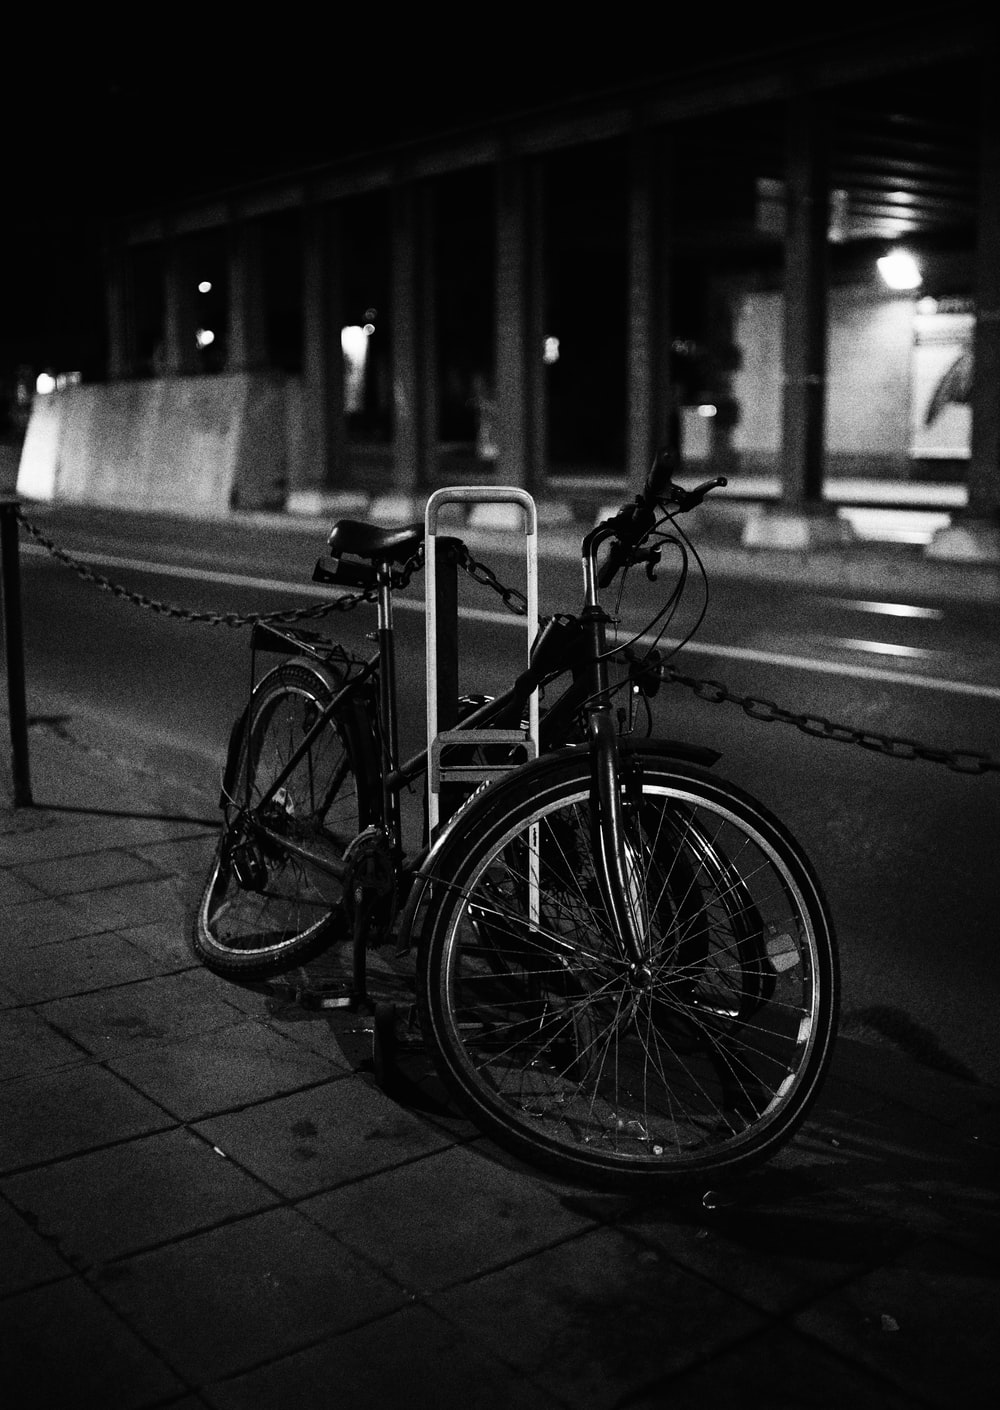 grayscale photo of city bicycle parked beside road